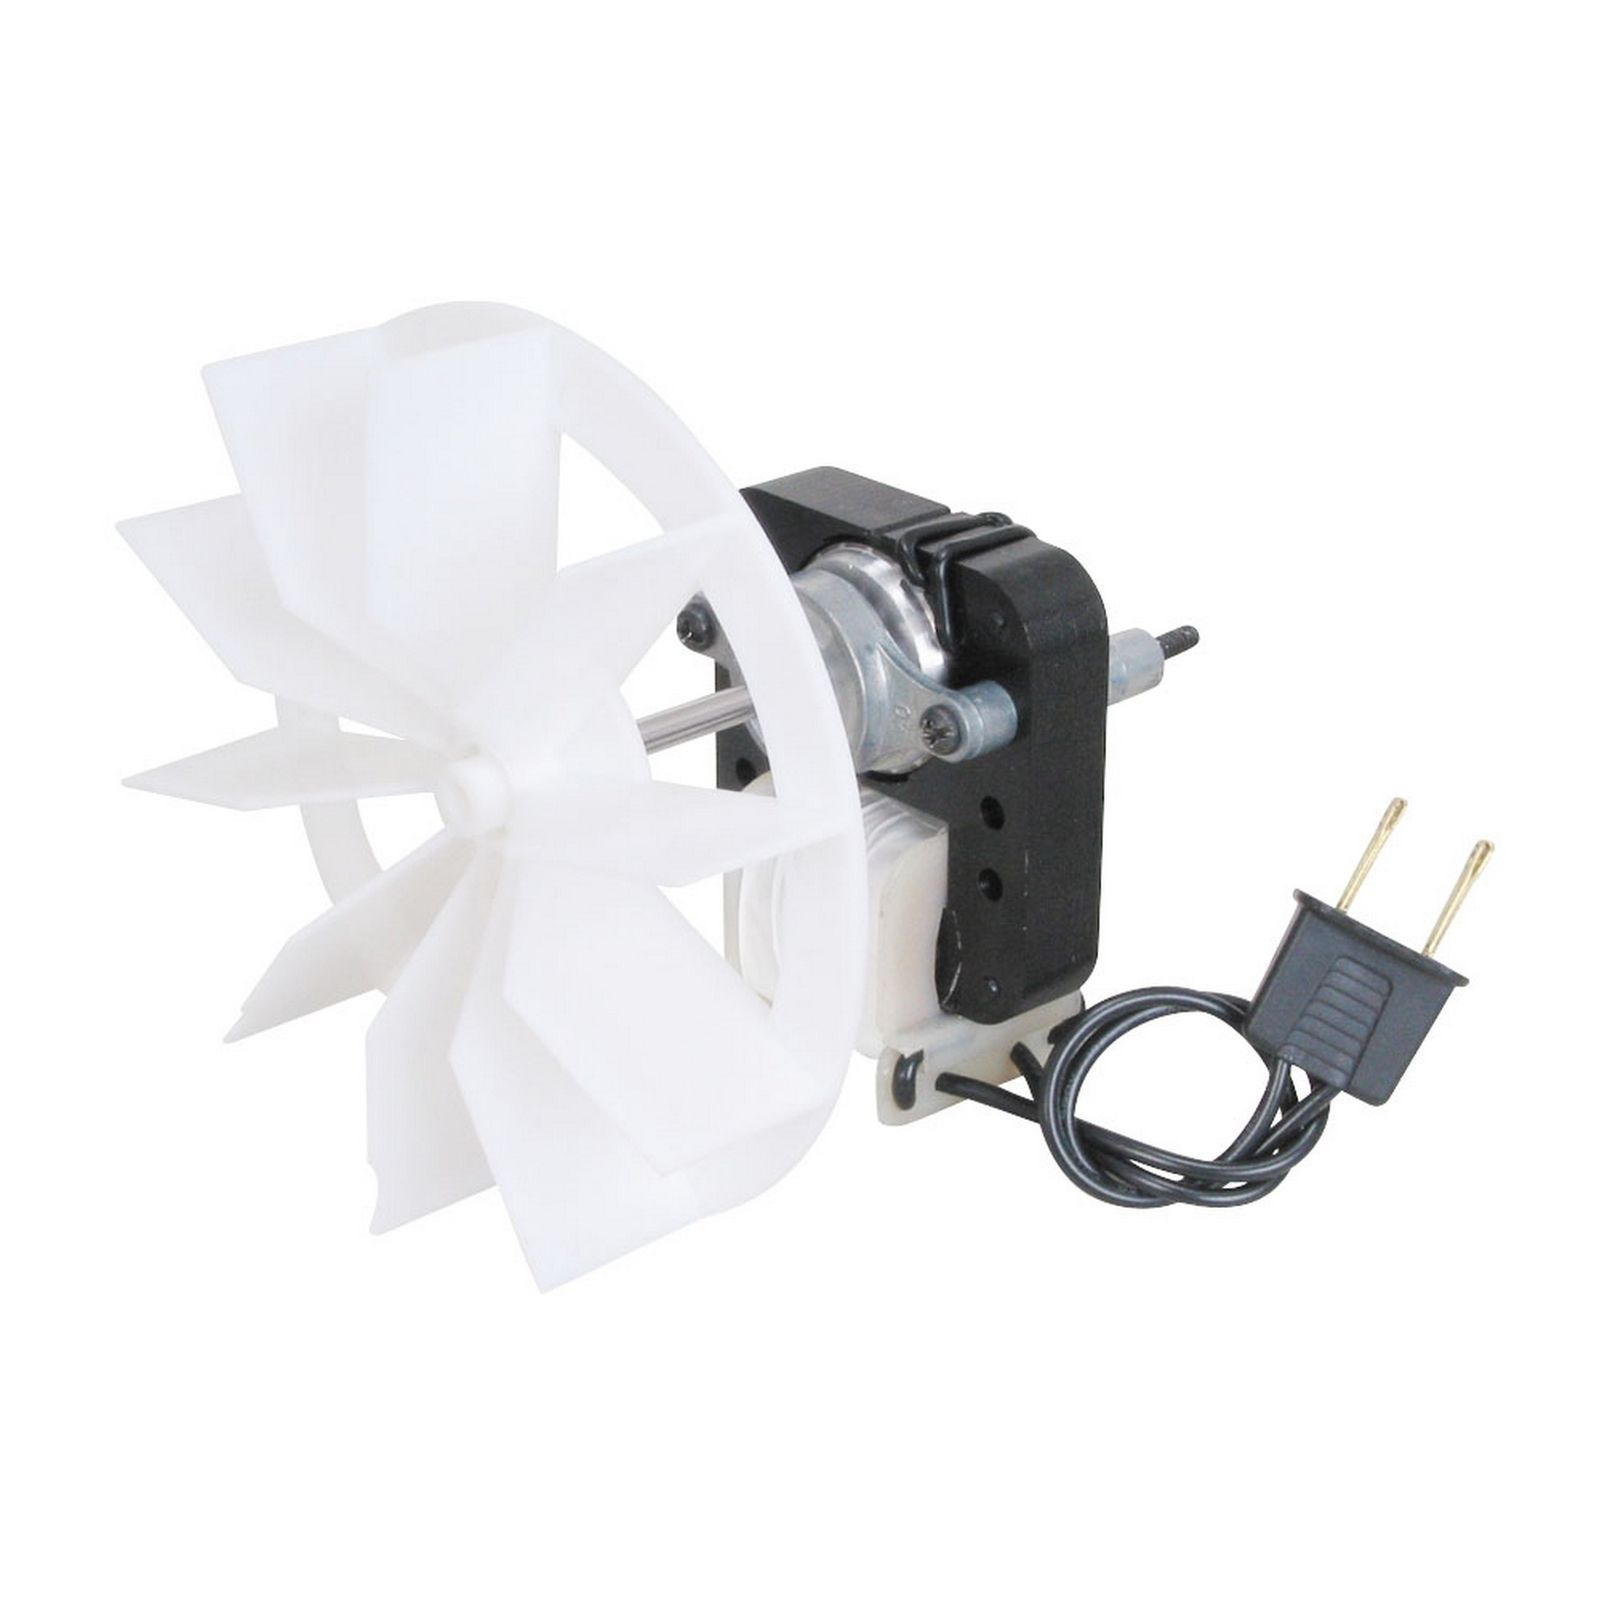 Fasco Bathroom Fans: BATHROOM FAN ELECTRIC Motor Replacement Kit For Broan